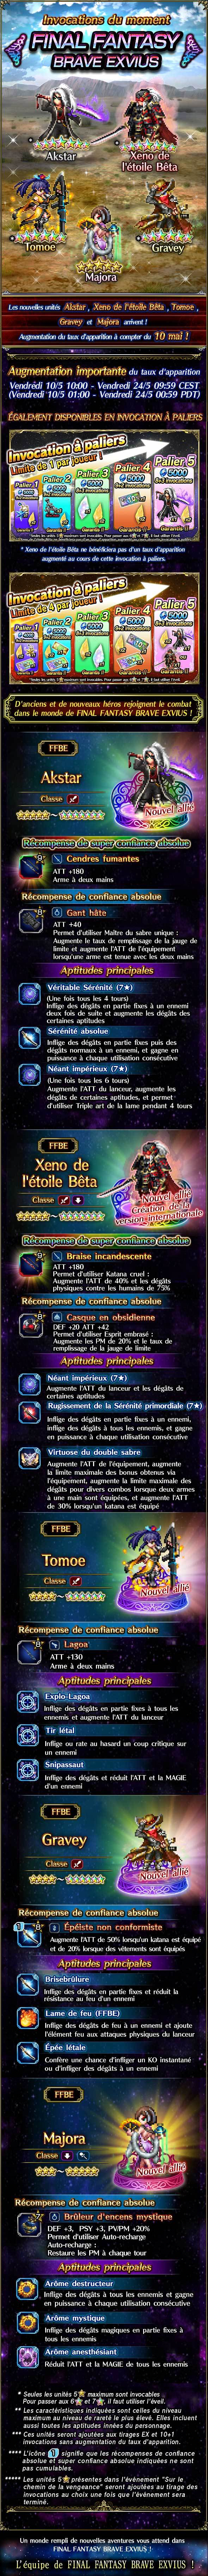 Invocations du moment - FFBE (Akstar/Xeno) - du 10/05 au 24/05/19 Gacha_NEWS_AkstarFeatureSummon_Compilation